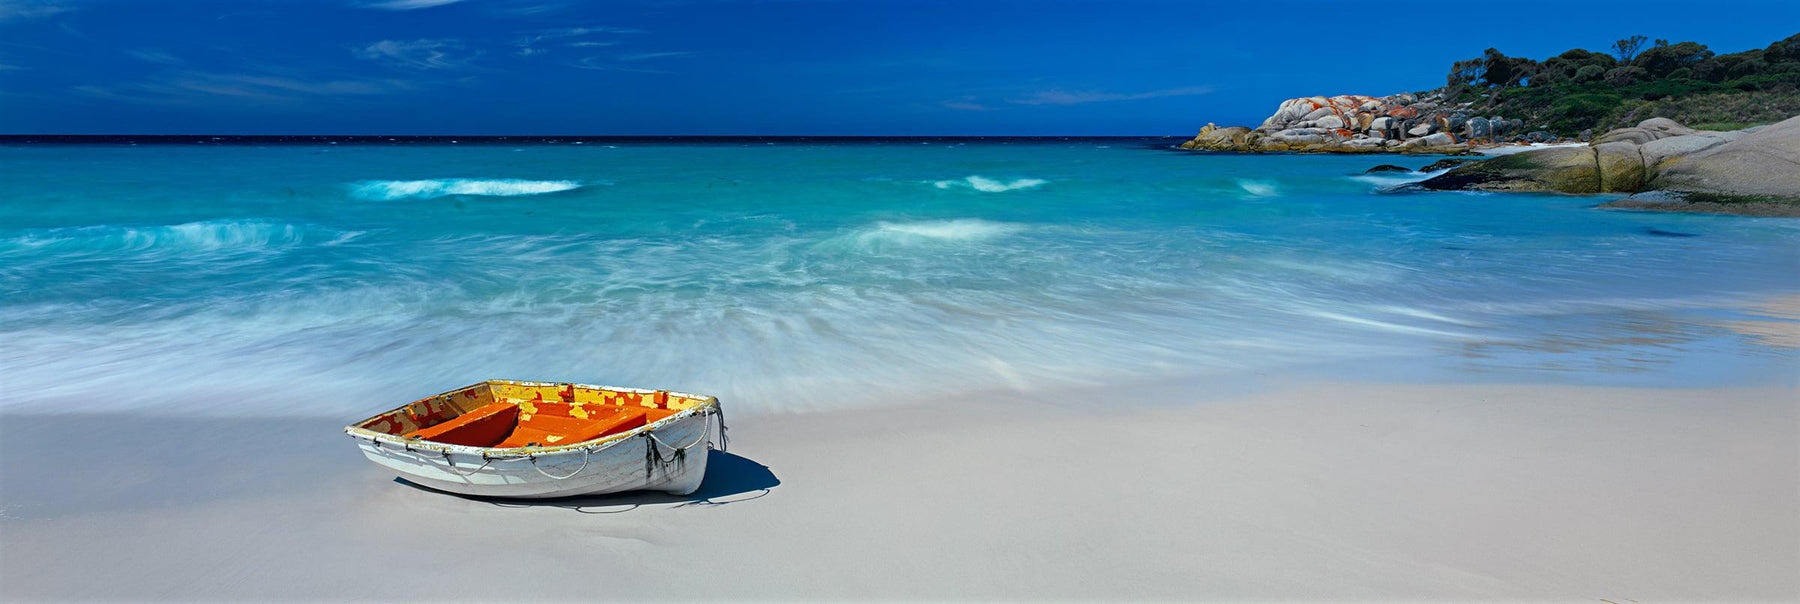 White and orange wooden row boat on the sandy beach of Wineglass Bay Australia